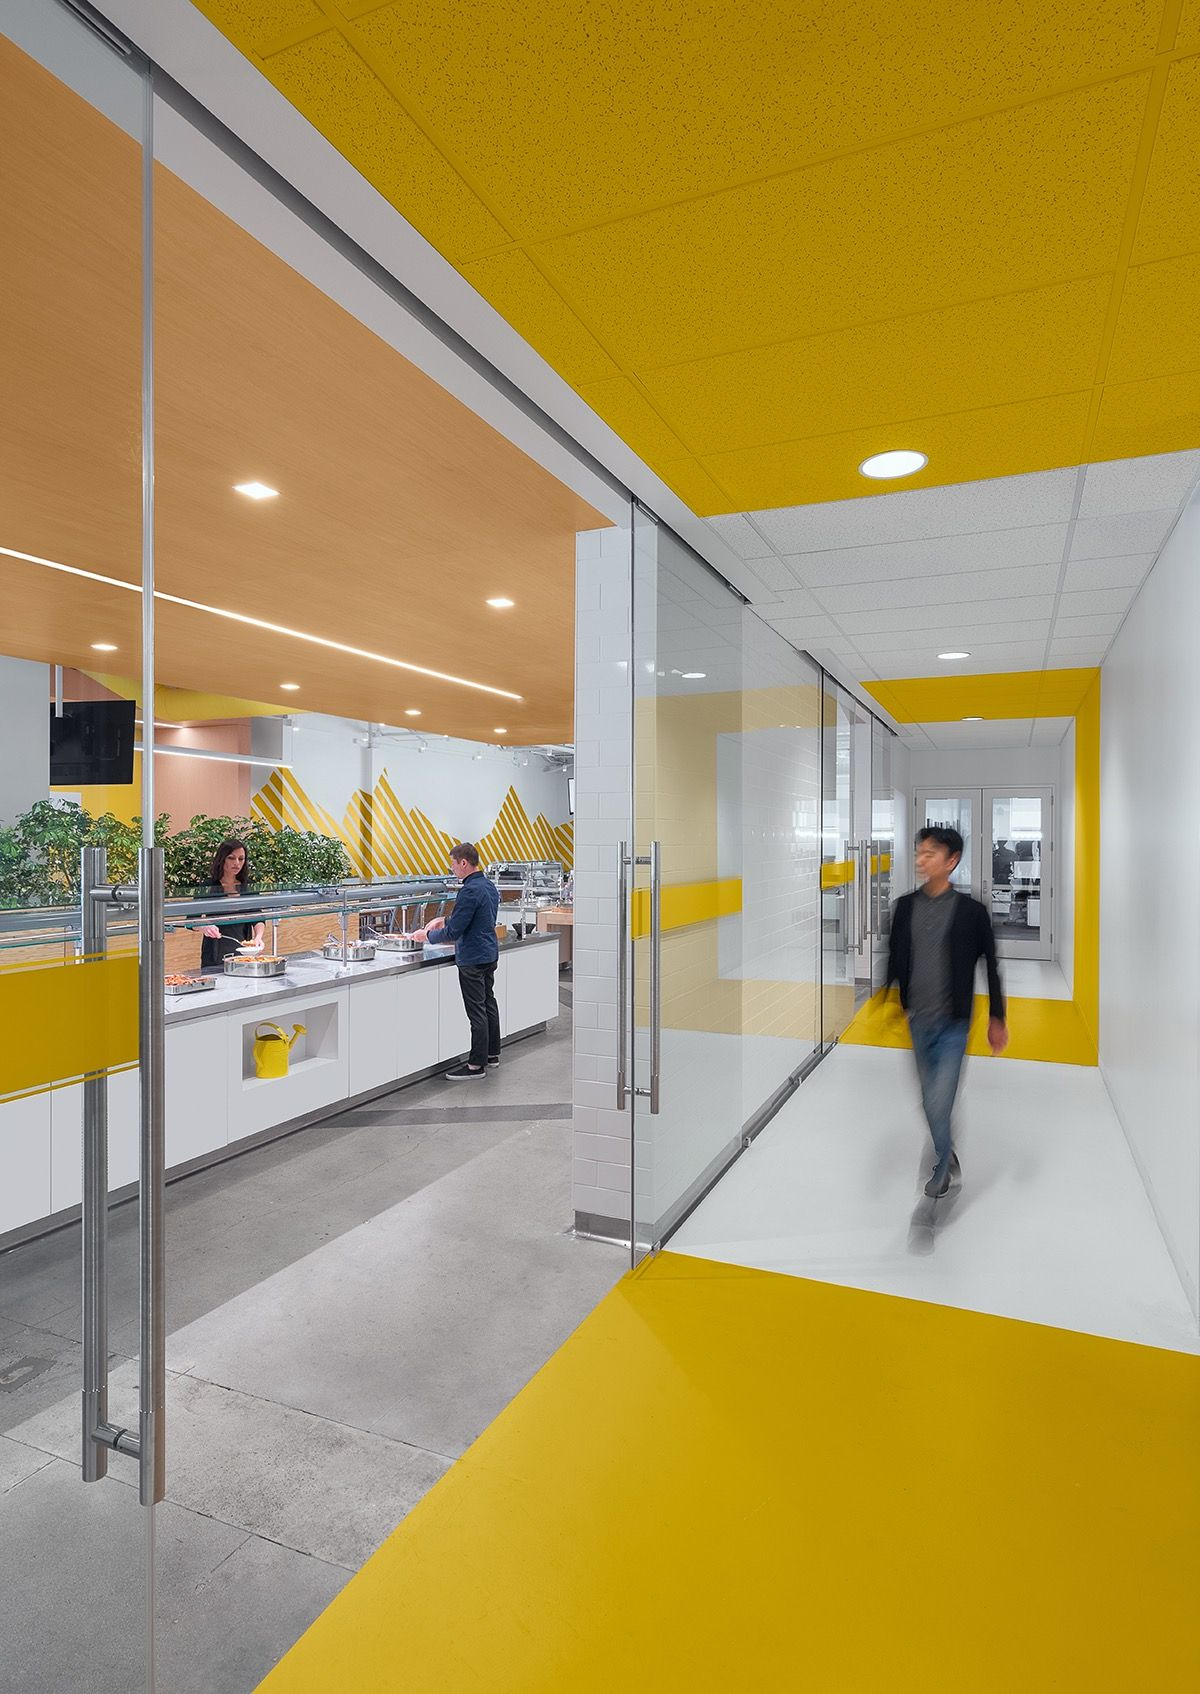 A Look Inside Technology Company Offices in Sunnyvale